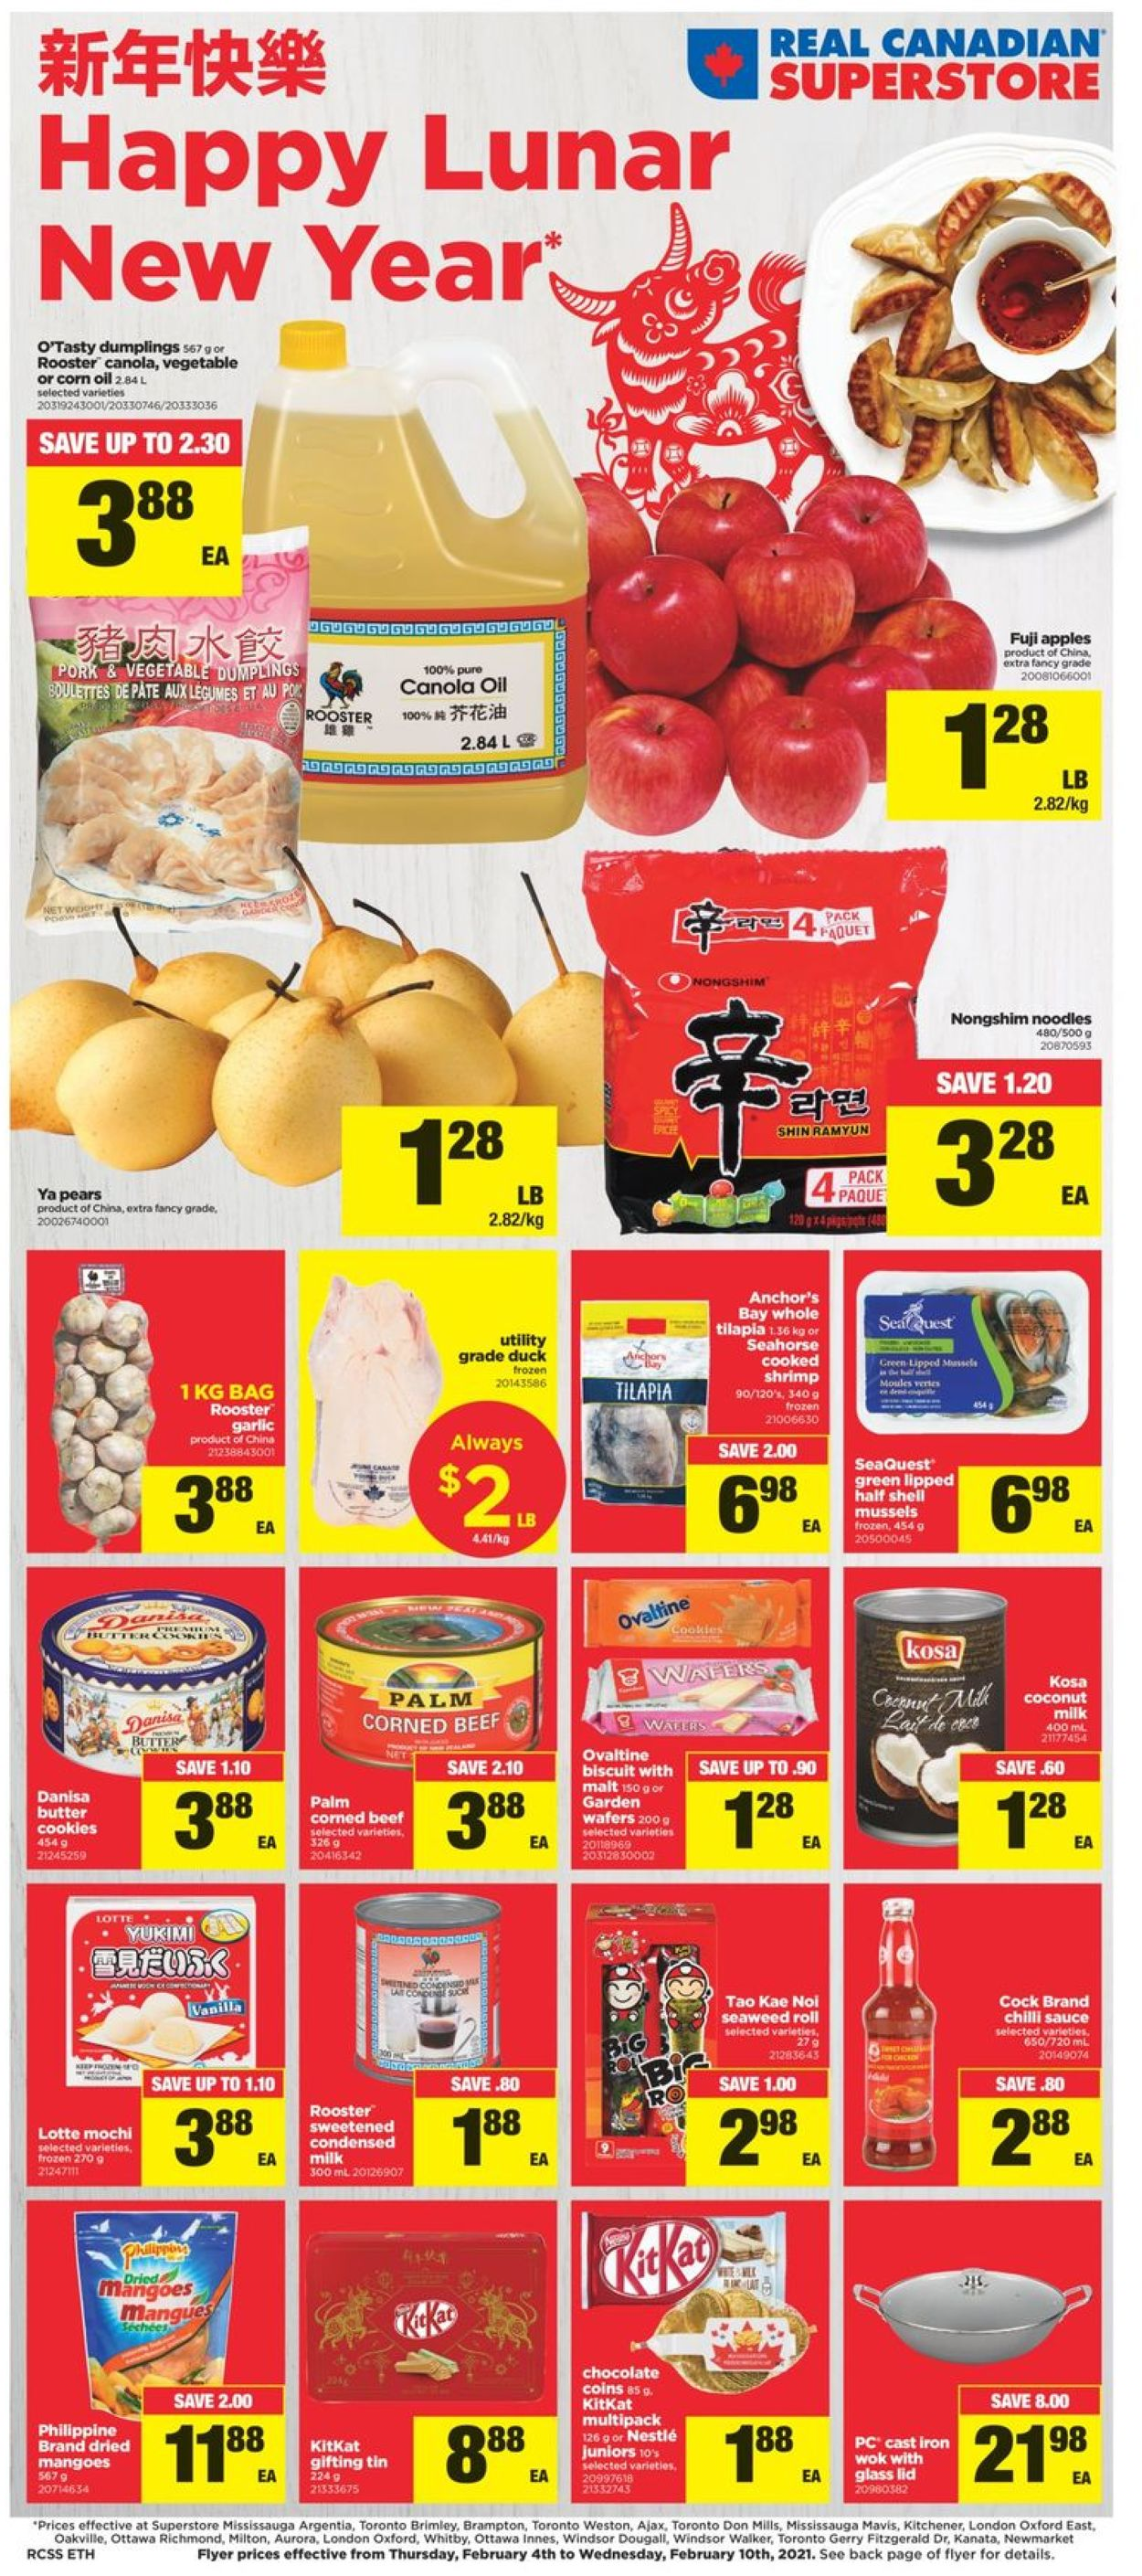 Real Canadian Superstore - Happy Lunar New Year 2021 Flyer - 02/04-02/10/2021